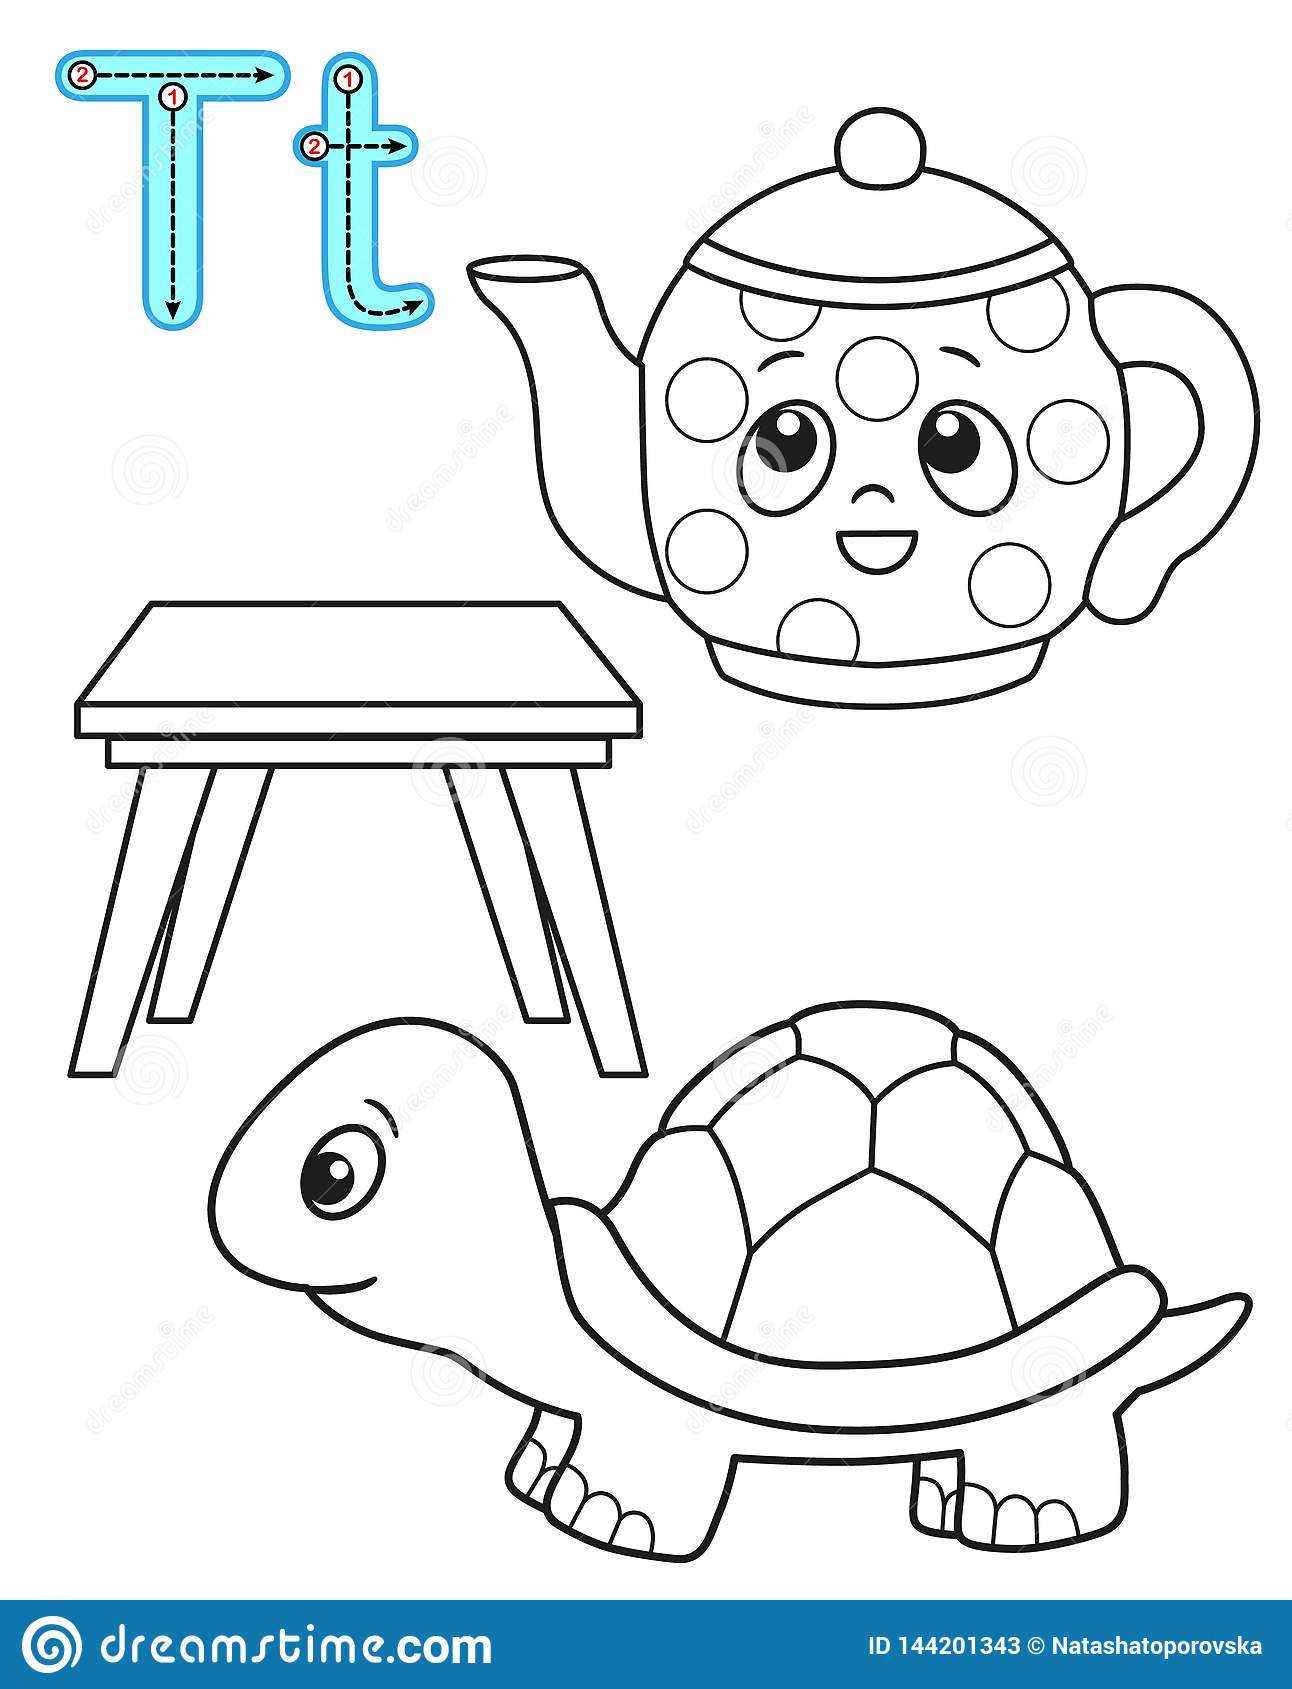 - Printable Coloring Page For Kindergarten And Preschool. Card For